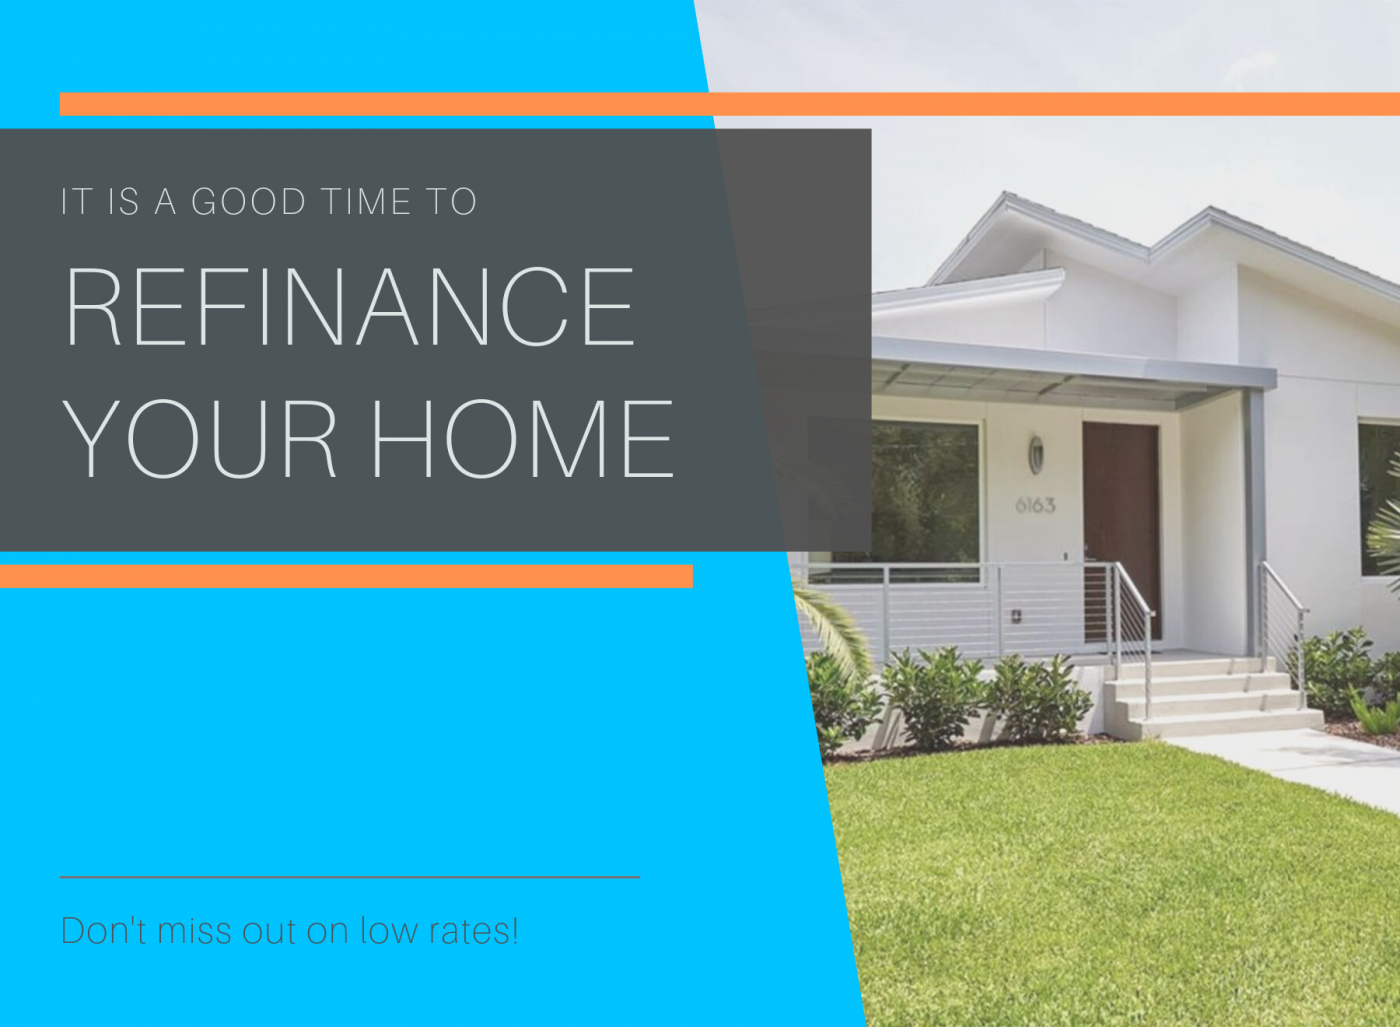 "Refinance Your Home. Cover Picture for article on ""It is a good time to refinance your home"" There is a gray box with silver letters, a blue box, then a mid century modern home in a picture on the right. The house is white with a brown door."